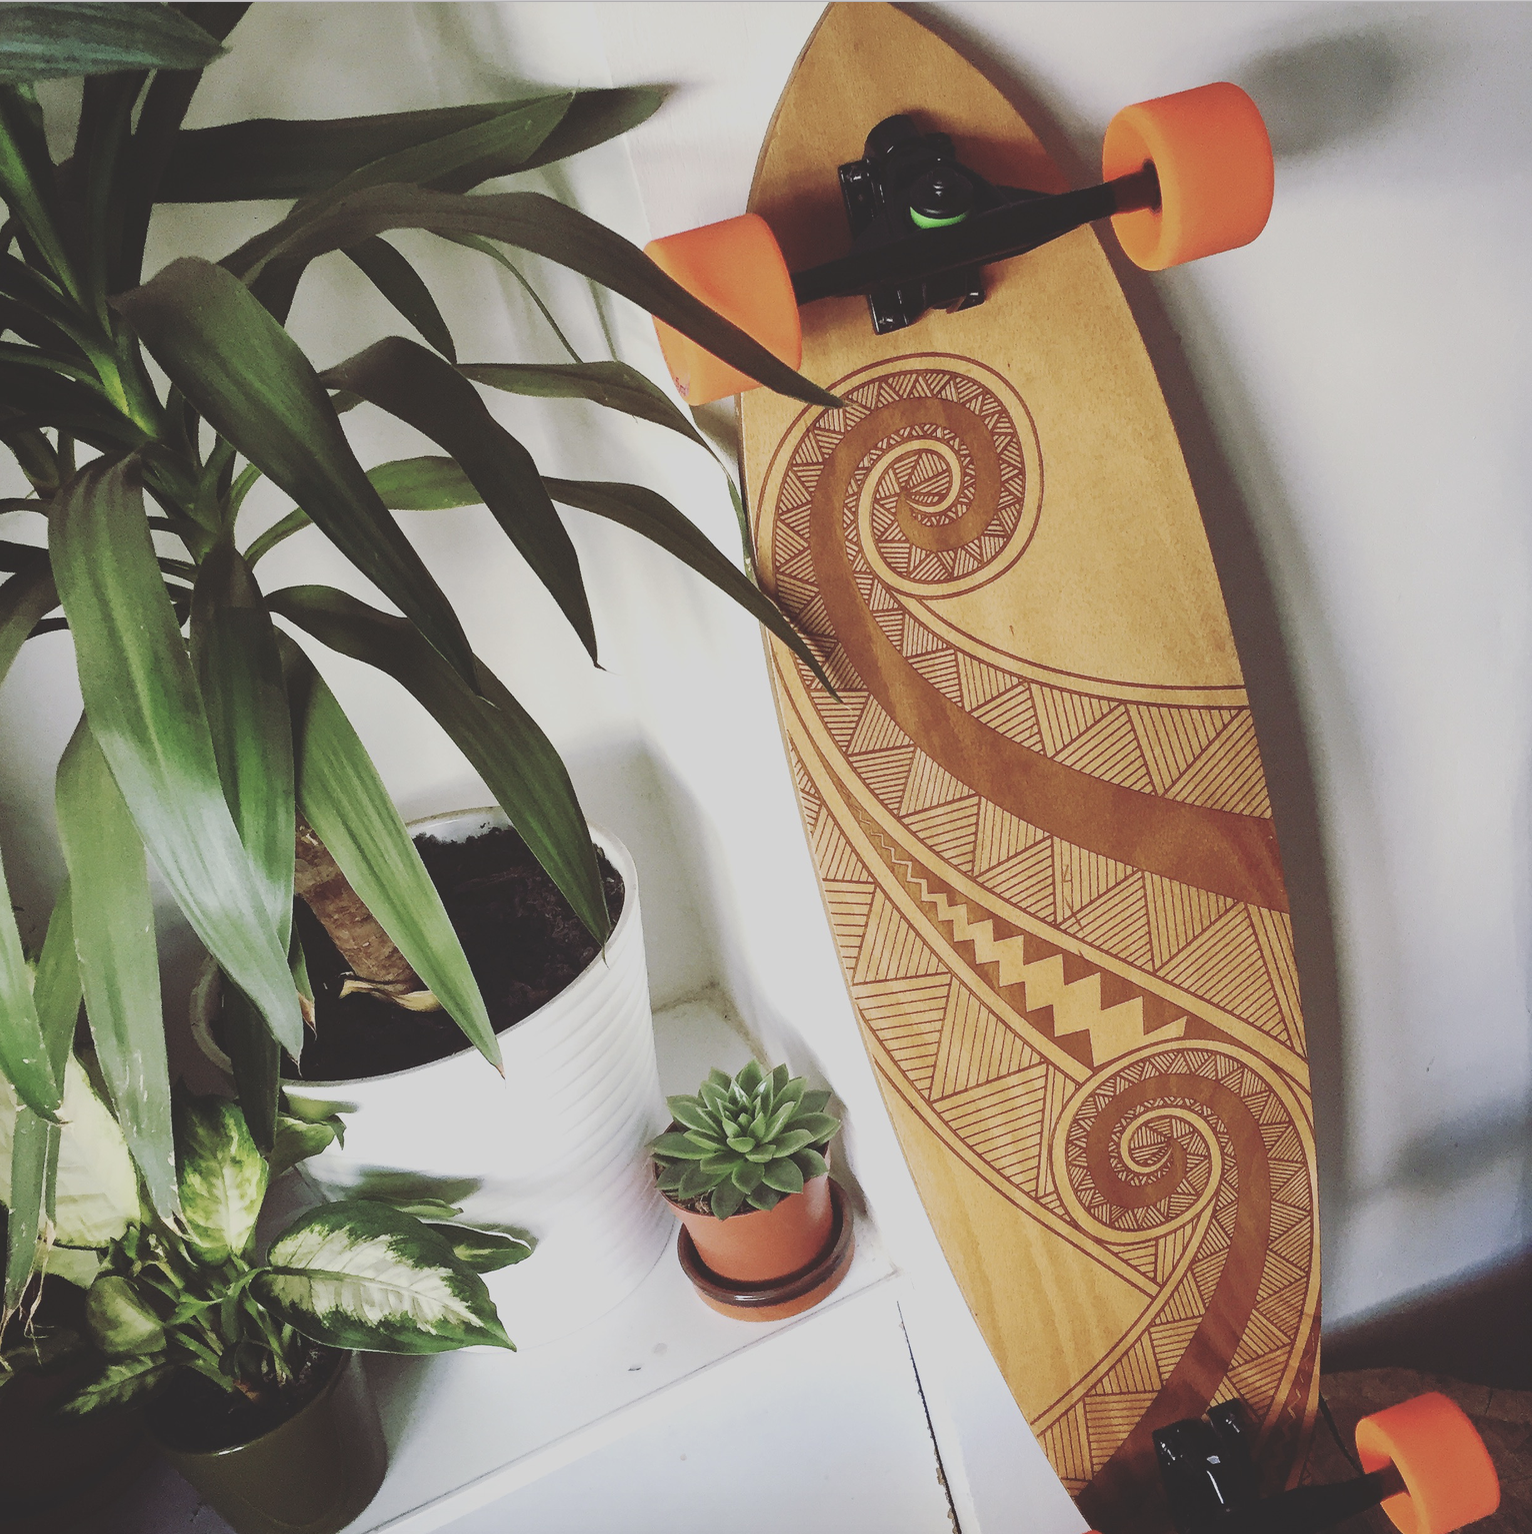 Longboard Designed and made using a laser and water jet cutter